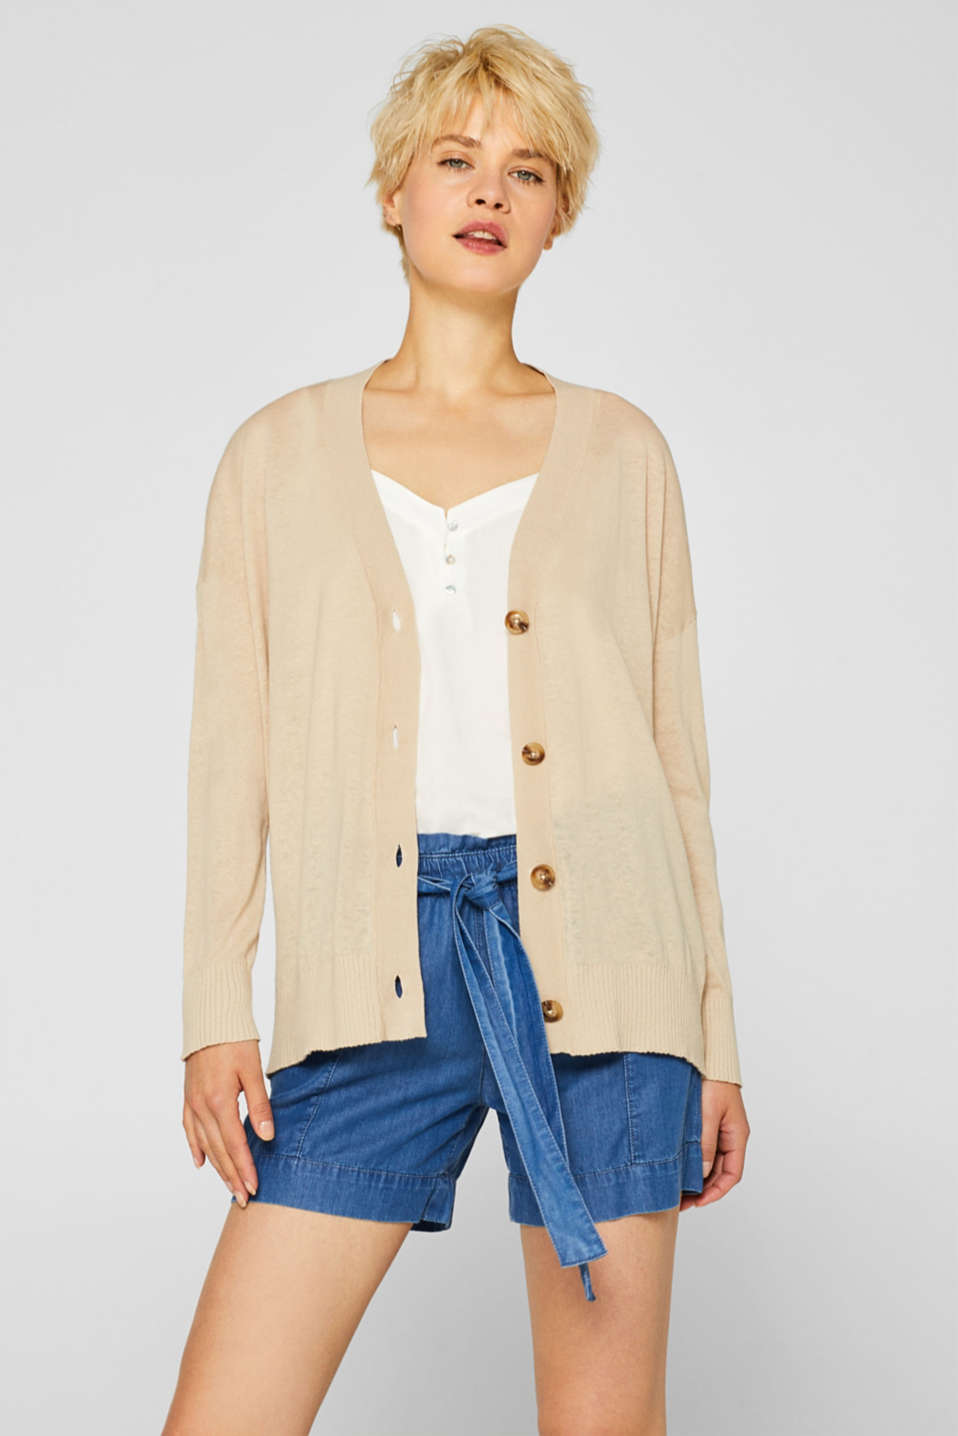 Esprit - Made of blended linen: Delicately knit cardigan